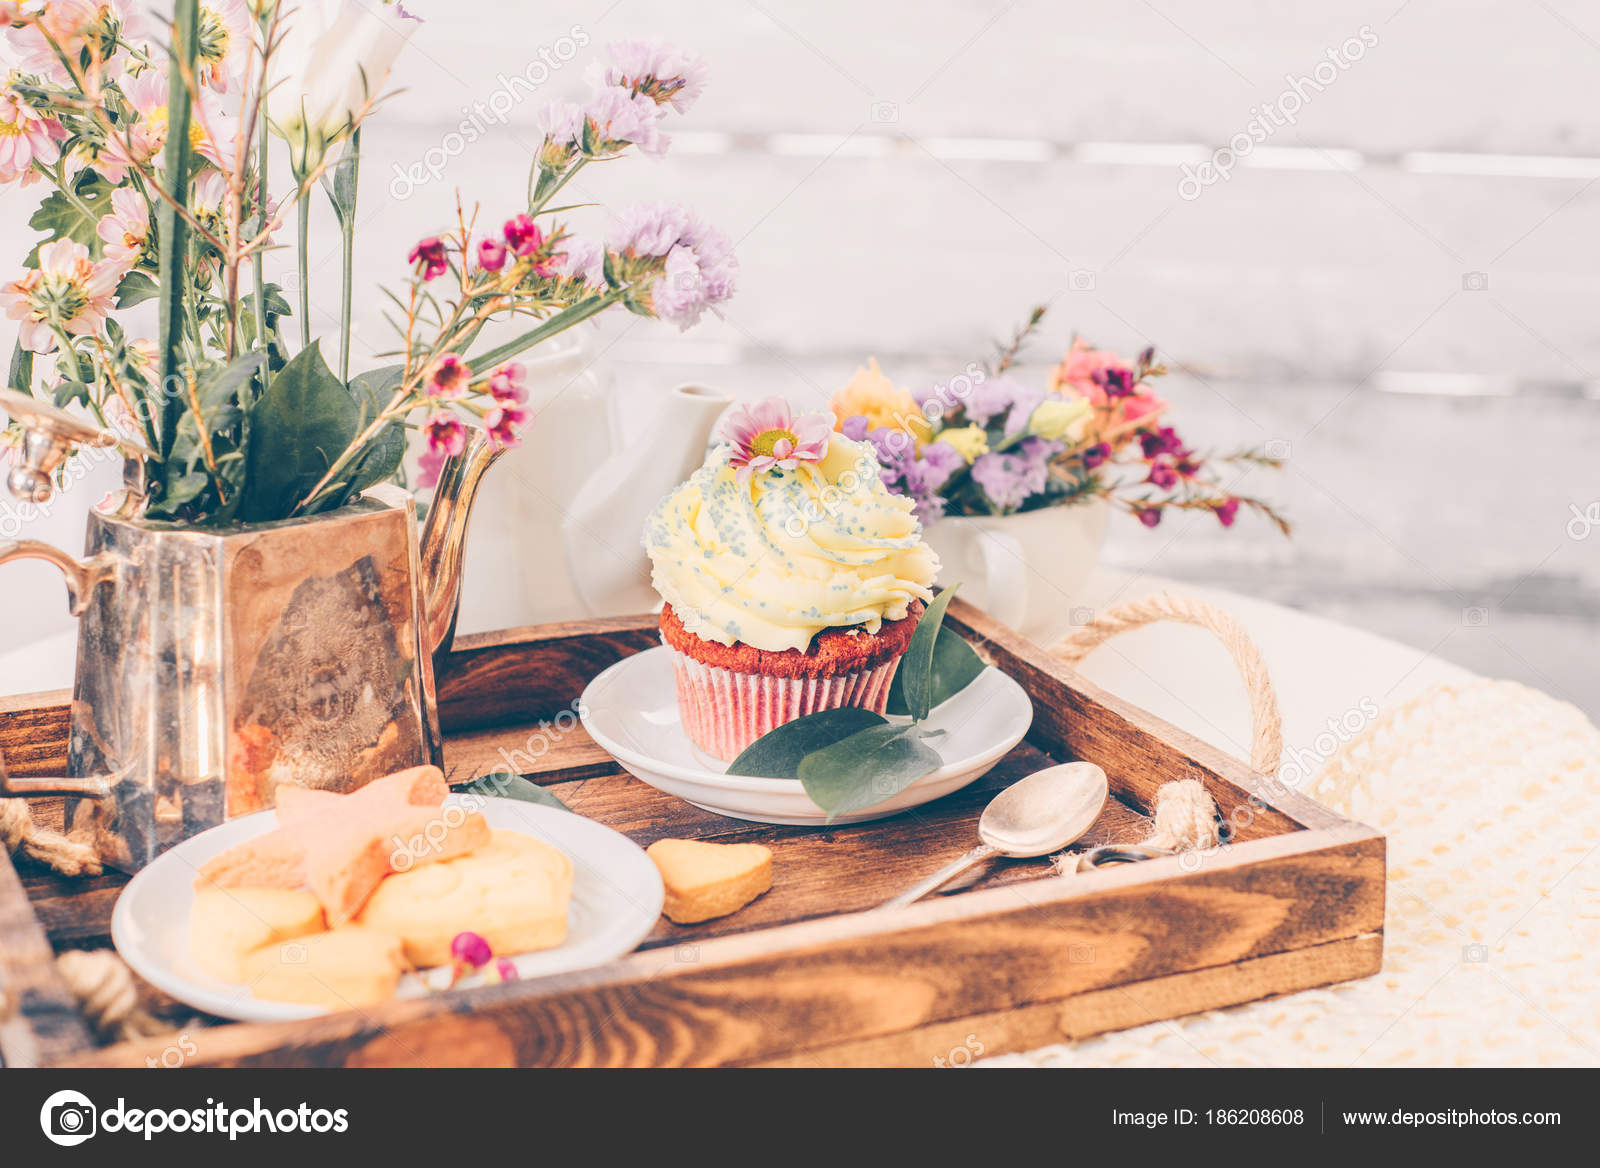 Cakes On Beautiful Wooden Tray With Flowers Stock Photo Vasilek